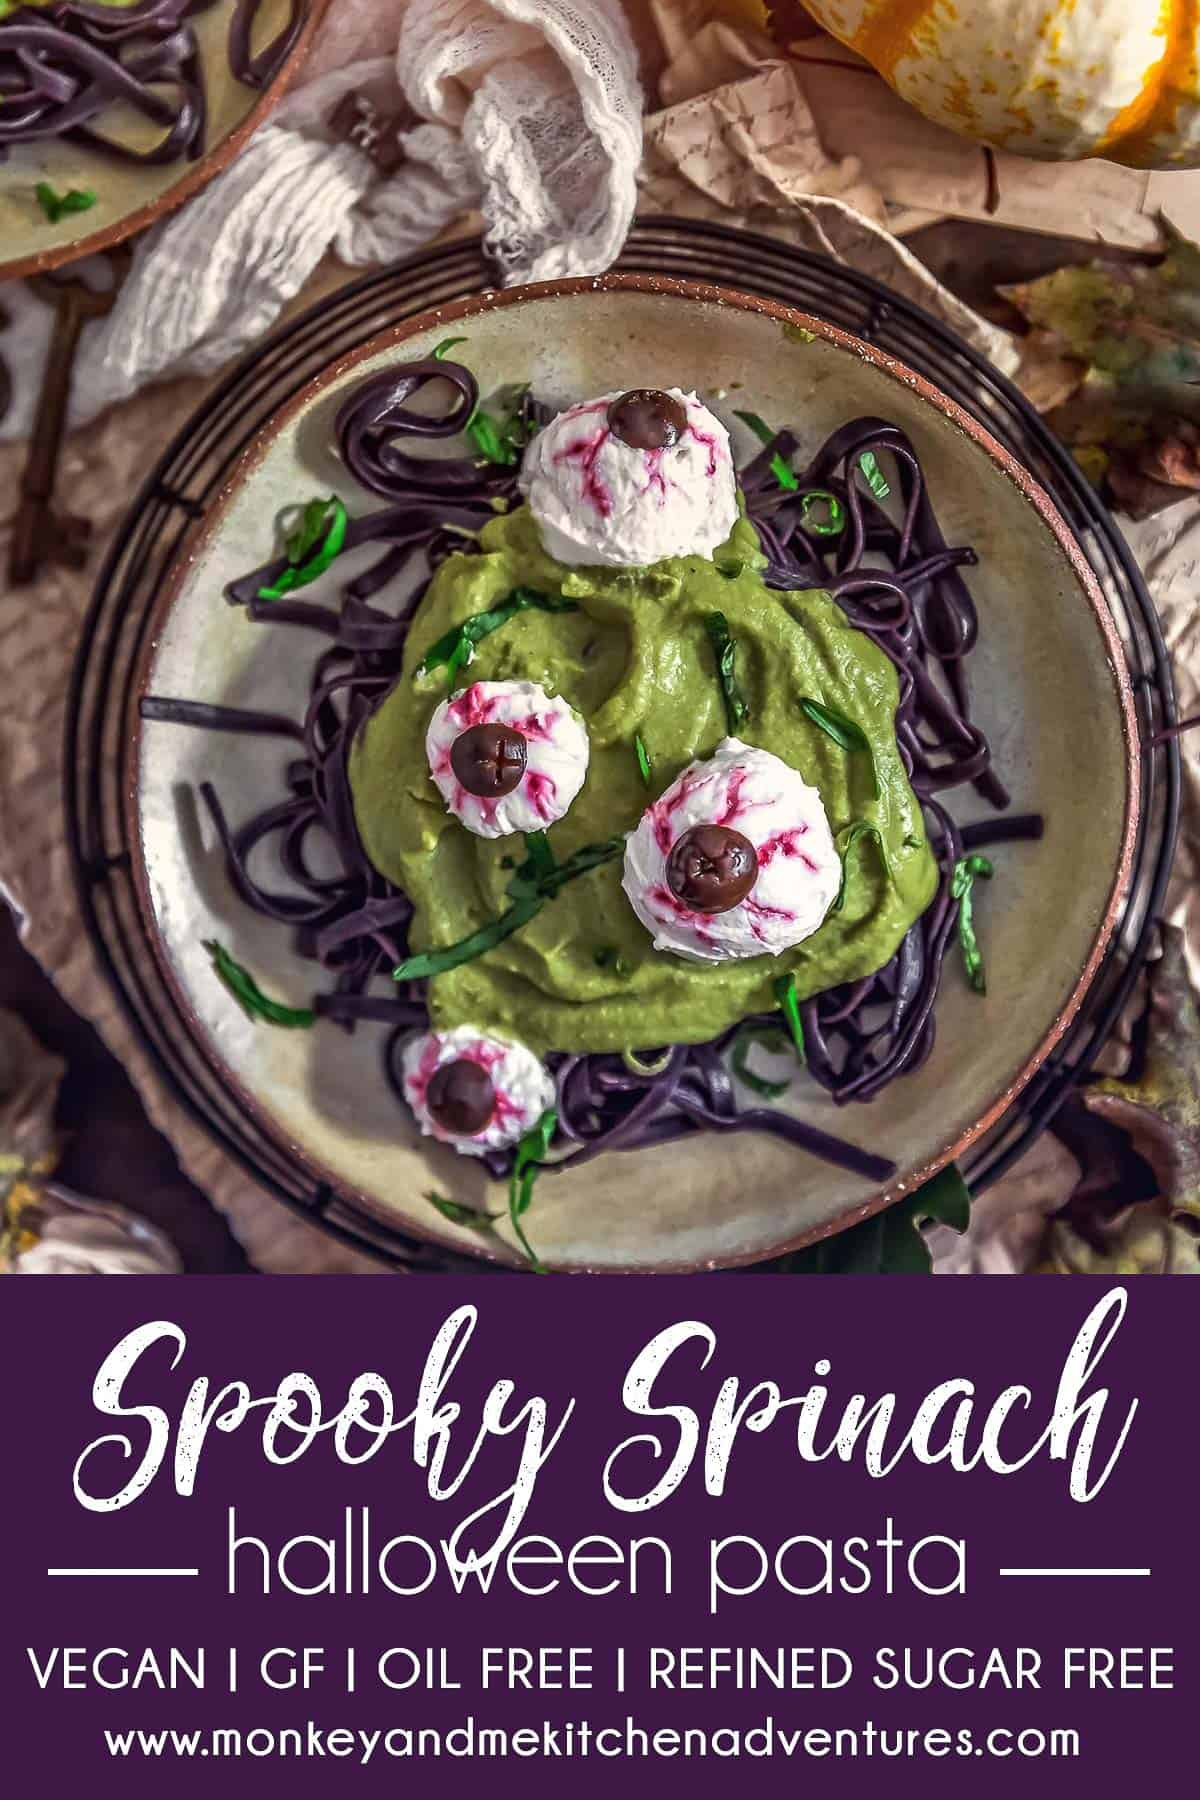 Spooky Spinach Halloween Pasta with text description